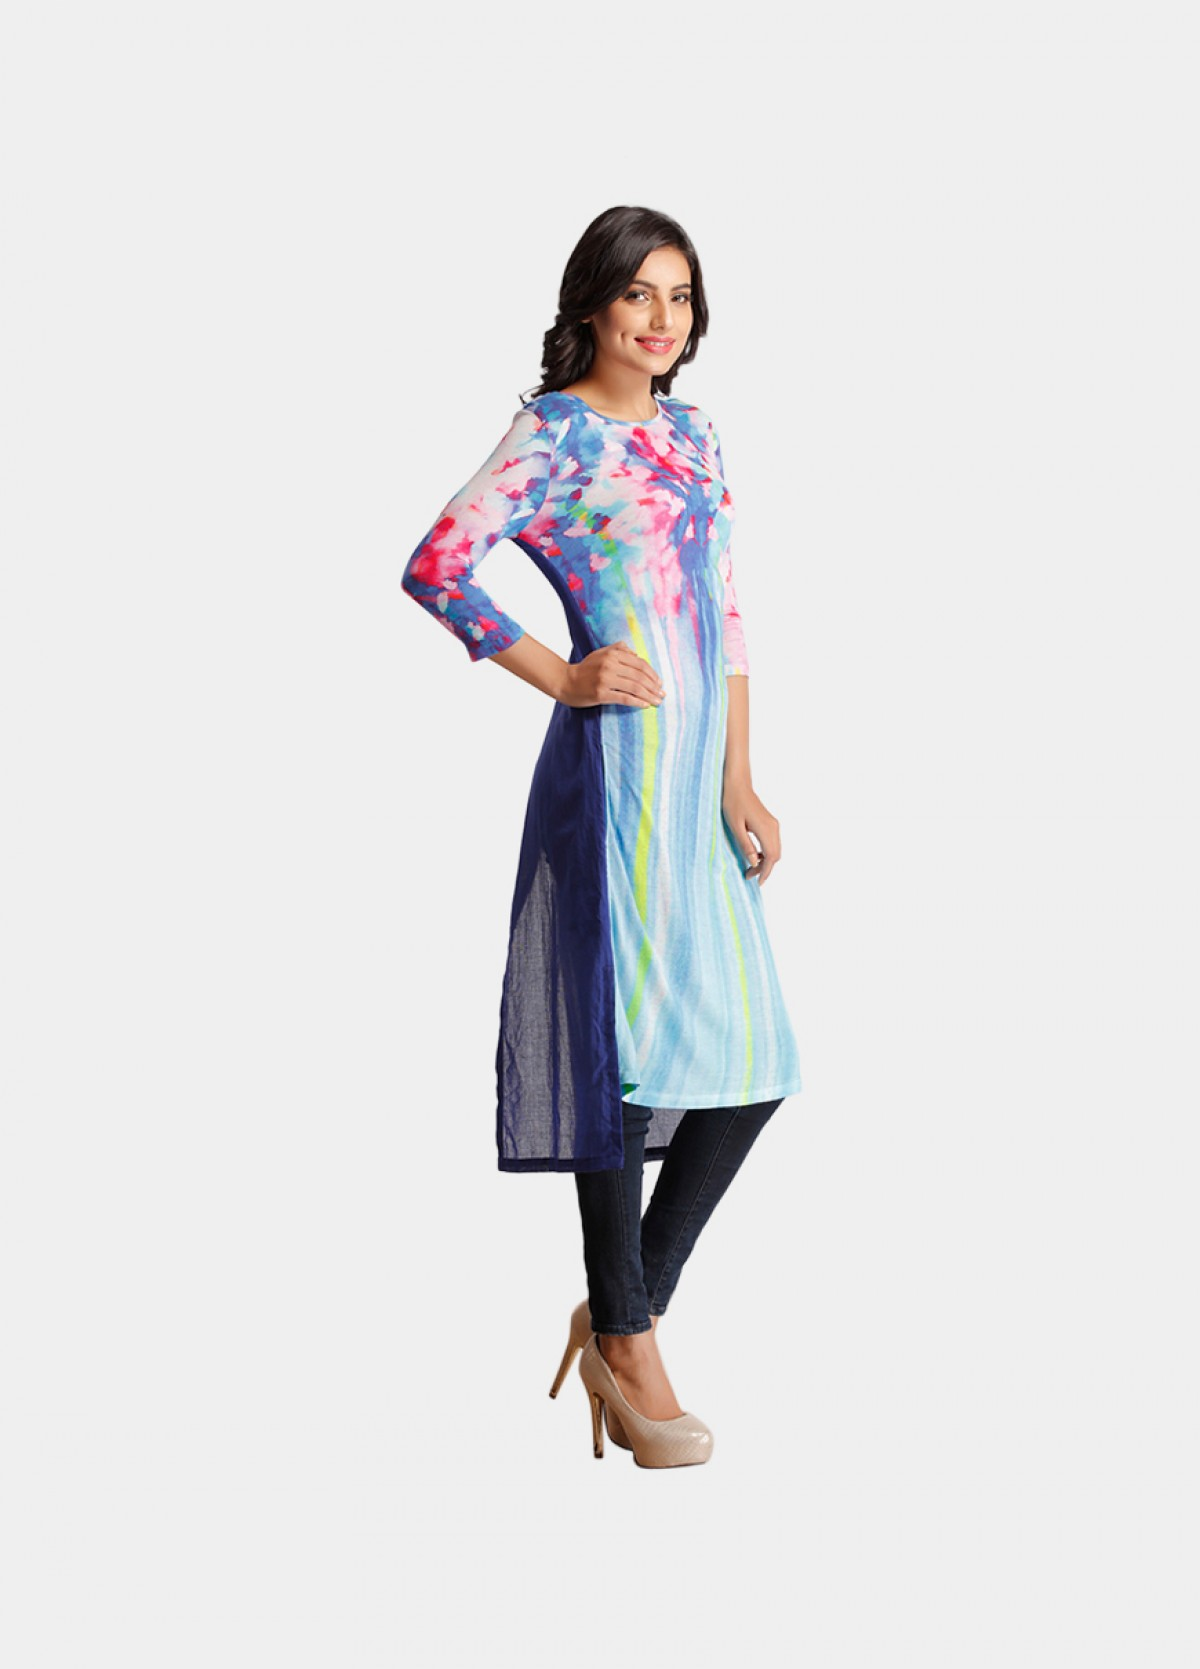 The Colorful Scales Printed Tunic